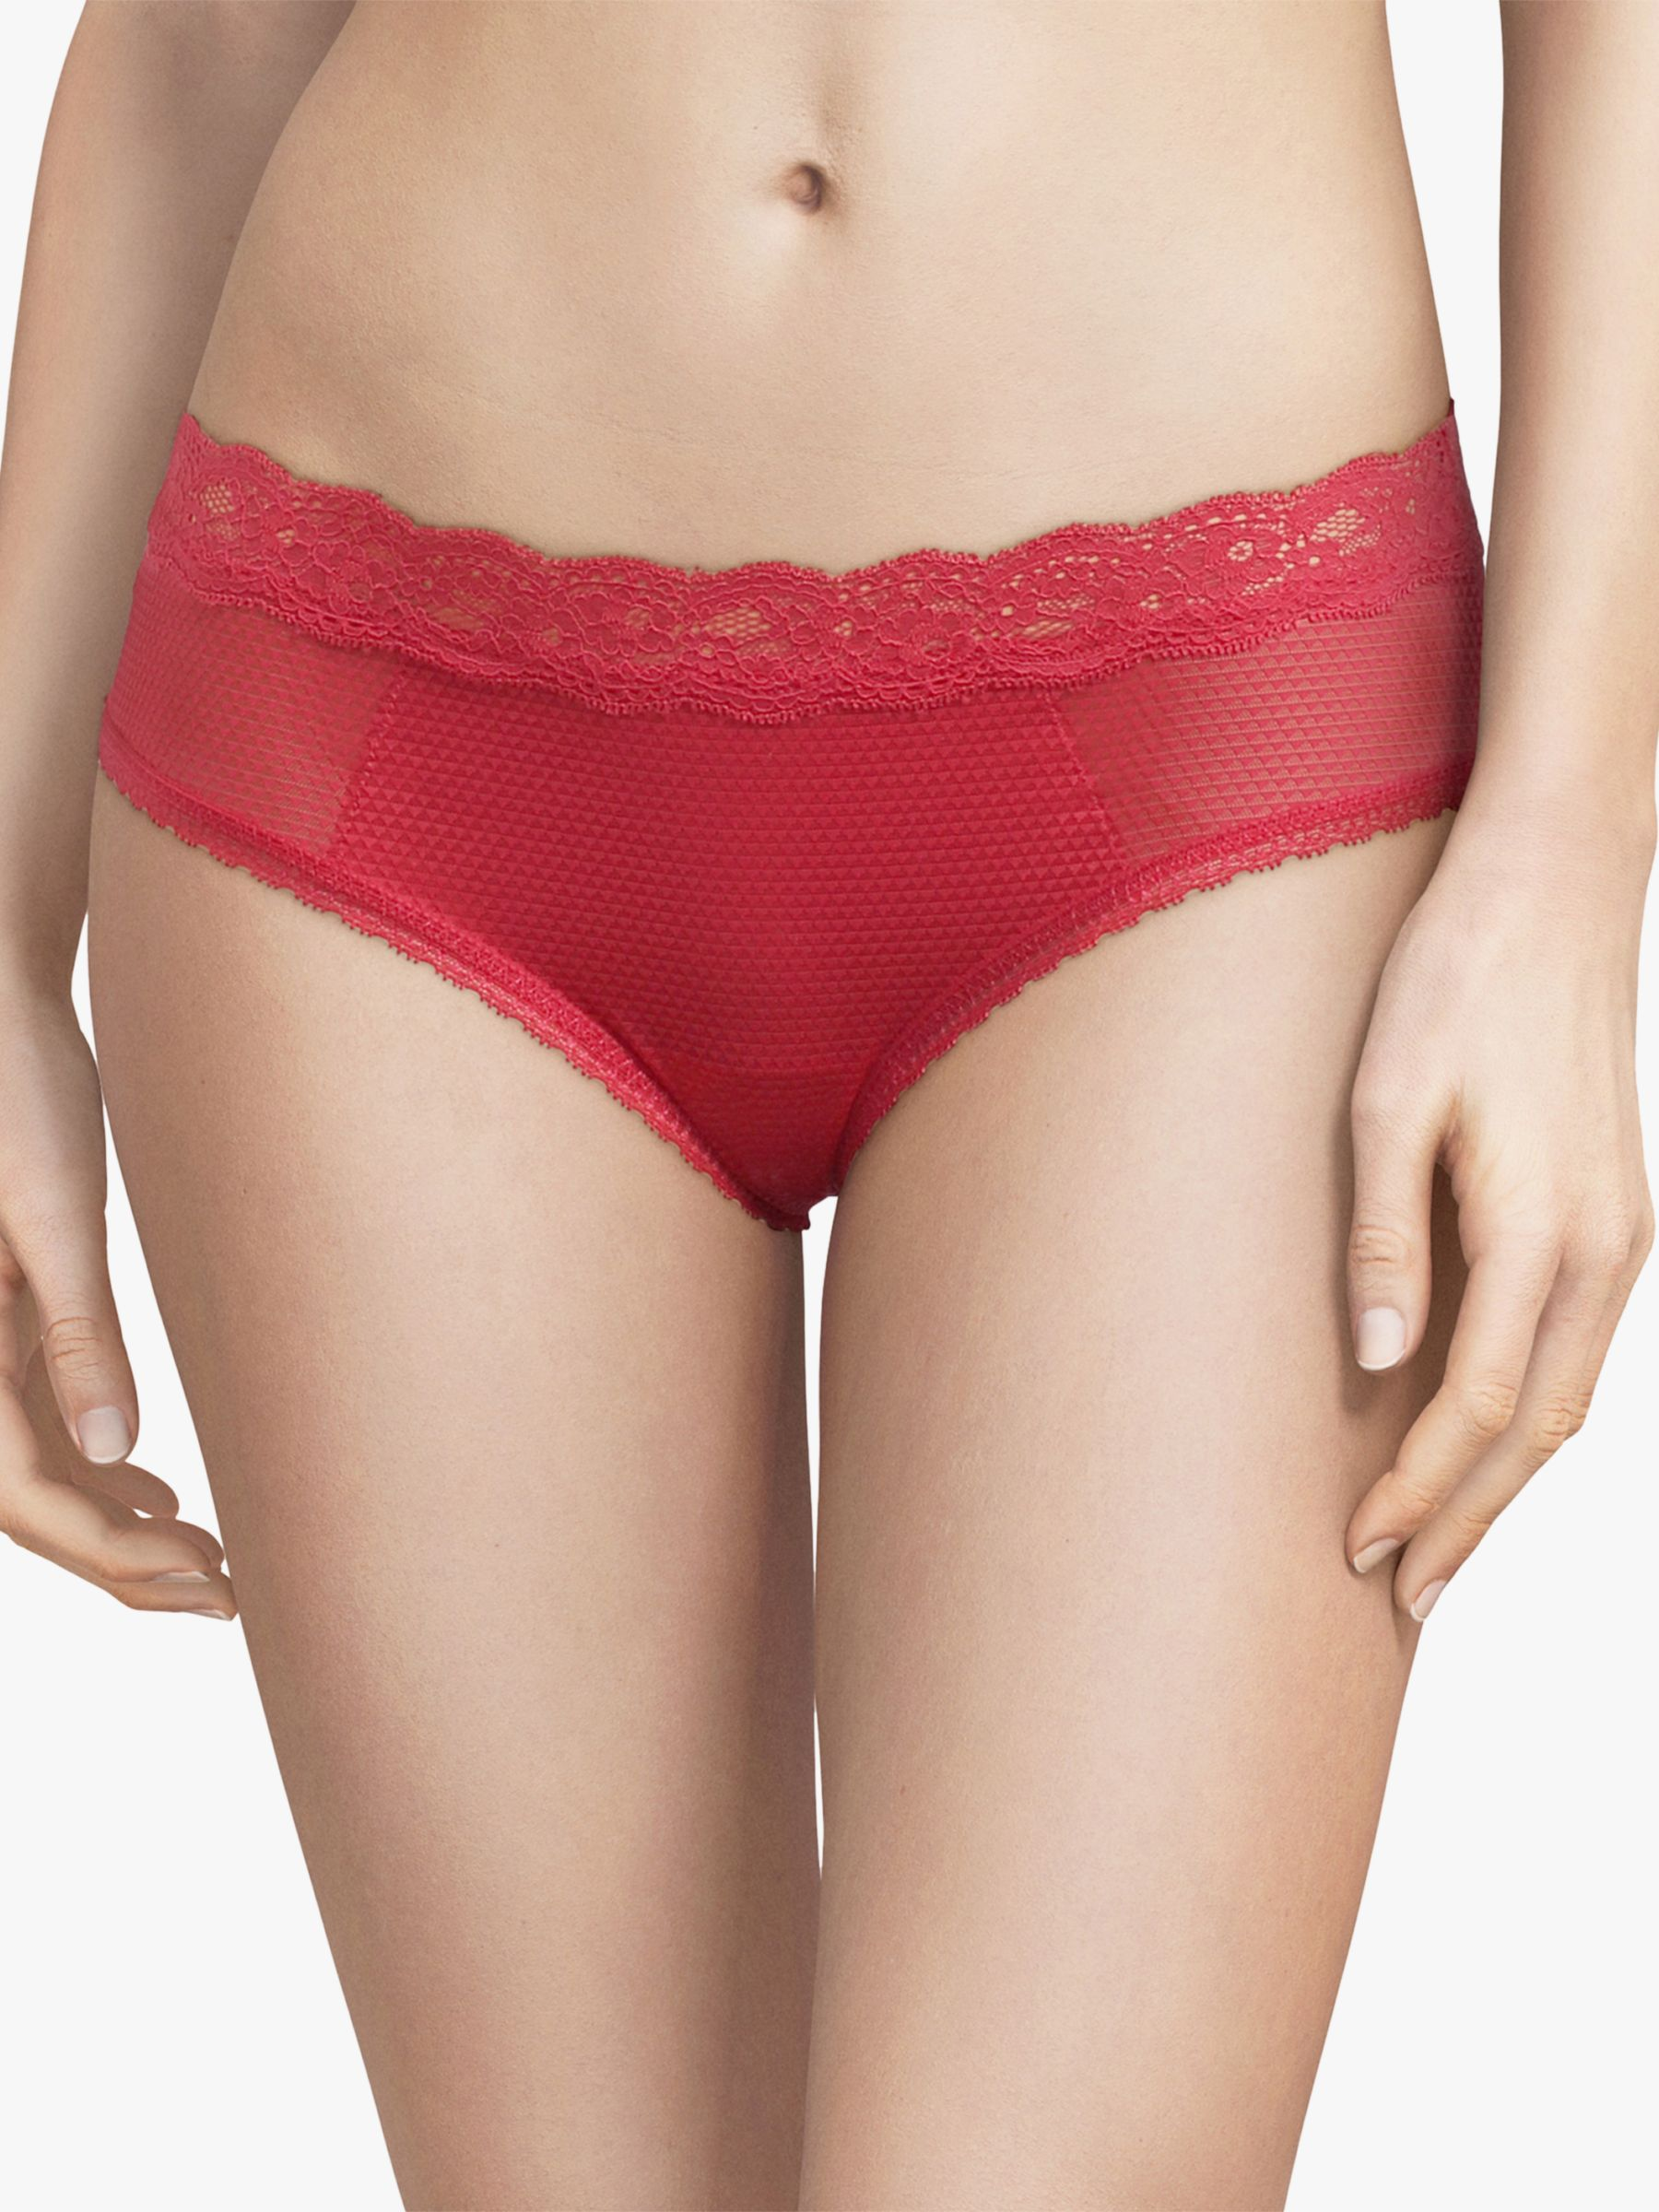 Passionata Passionata Brooklyn Hipster Briefs, Stawberry